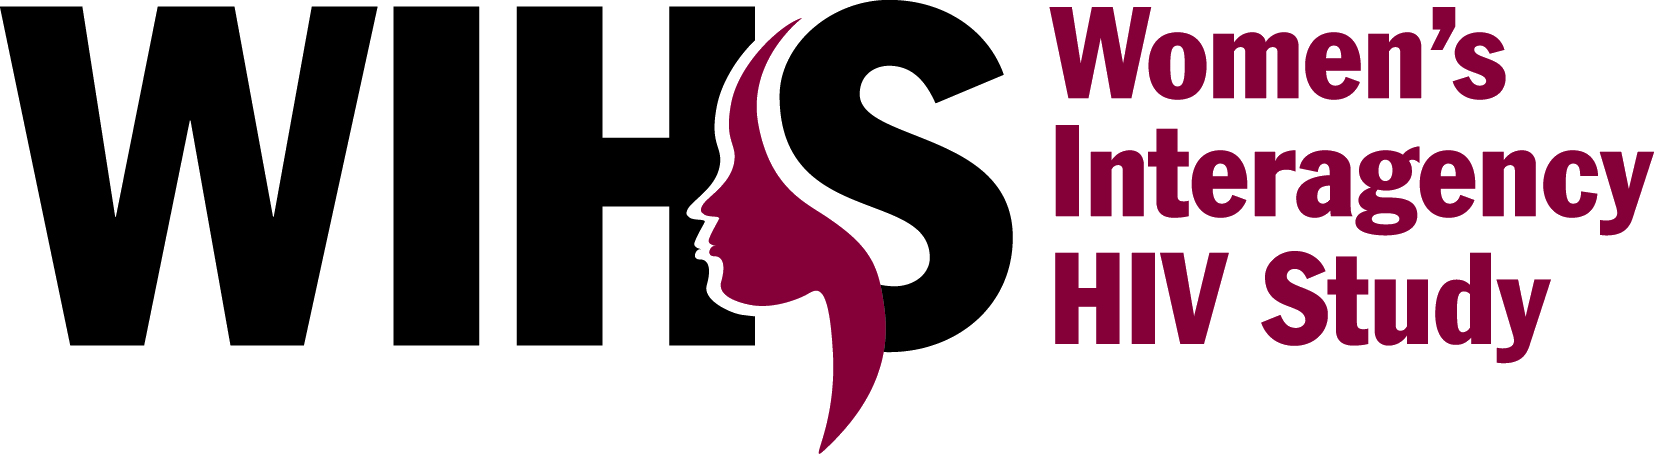 WIHS LOGO transparent